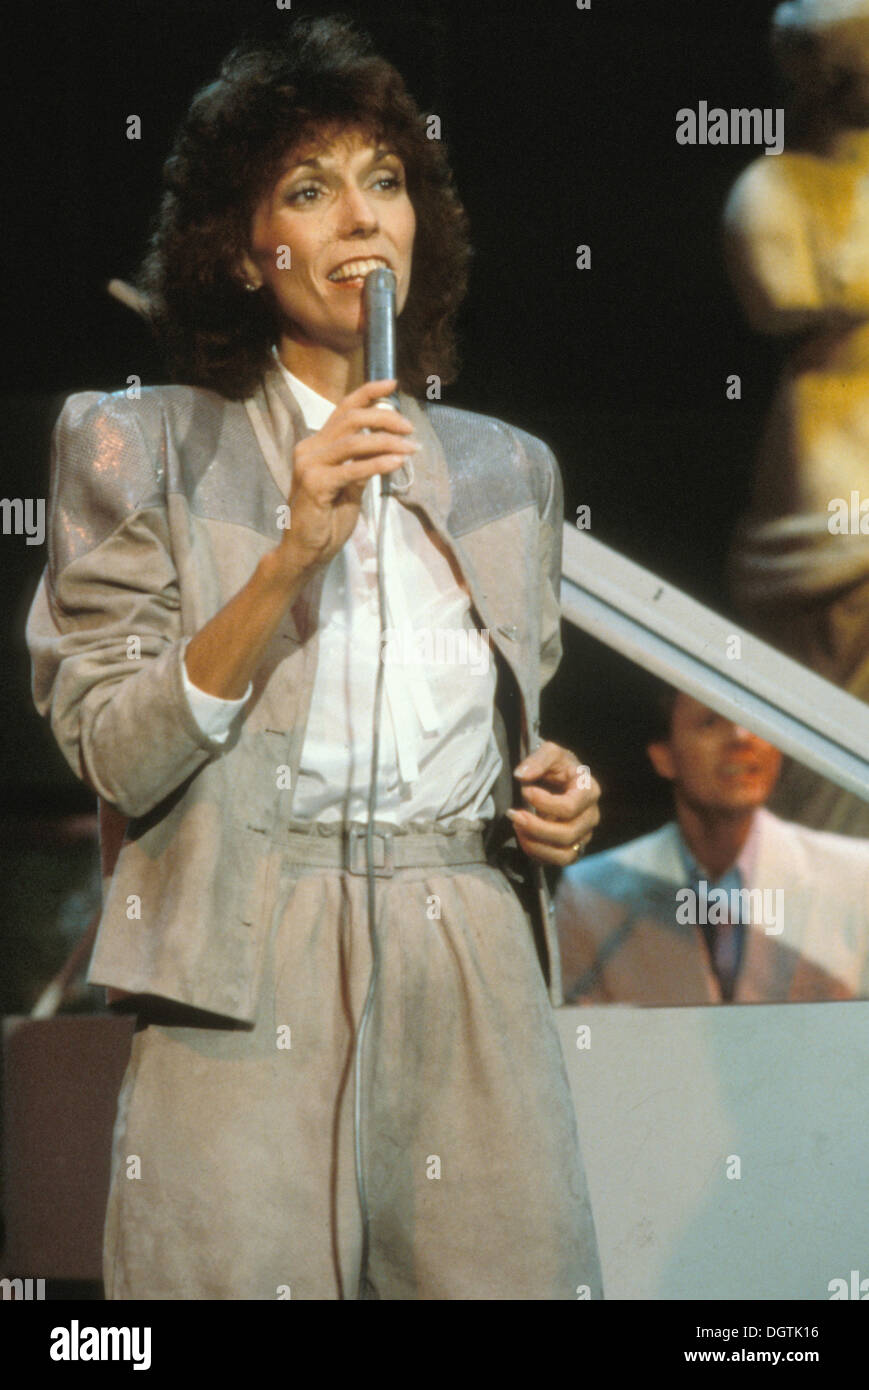 KAREN CARPENTER  1950 1983  American singer about 1976  Photo Stock     KAREN CARPENTER  1950 1983  American singer about 1976  Photo Laurens van  Houten